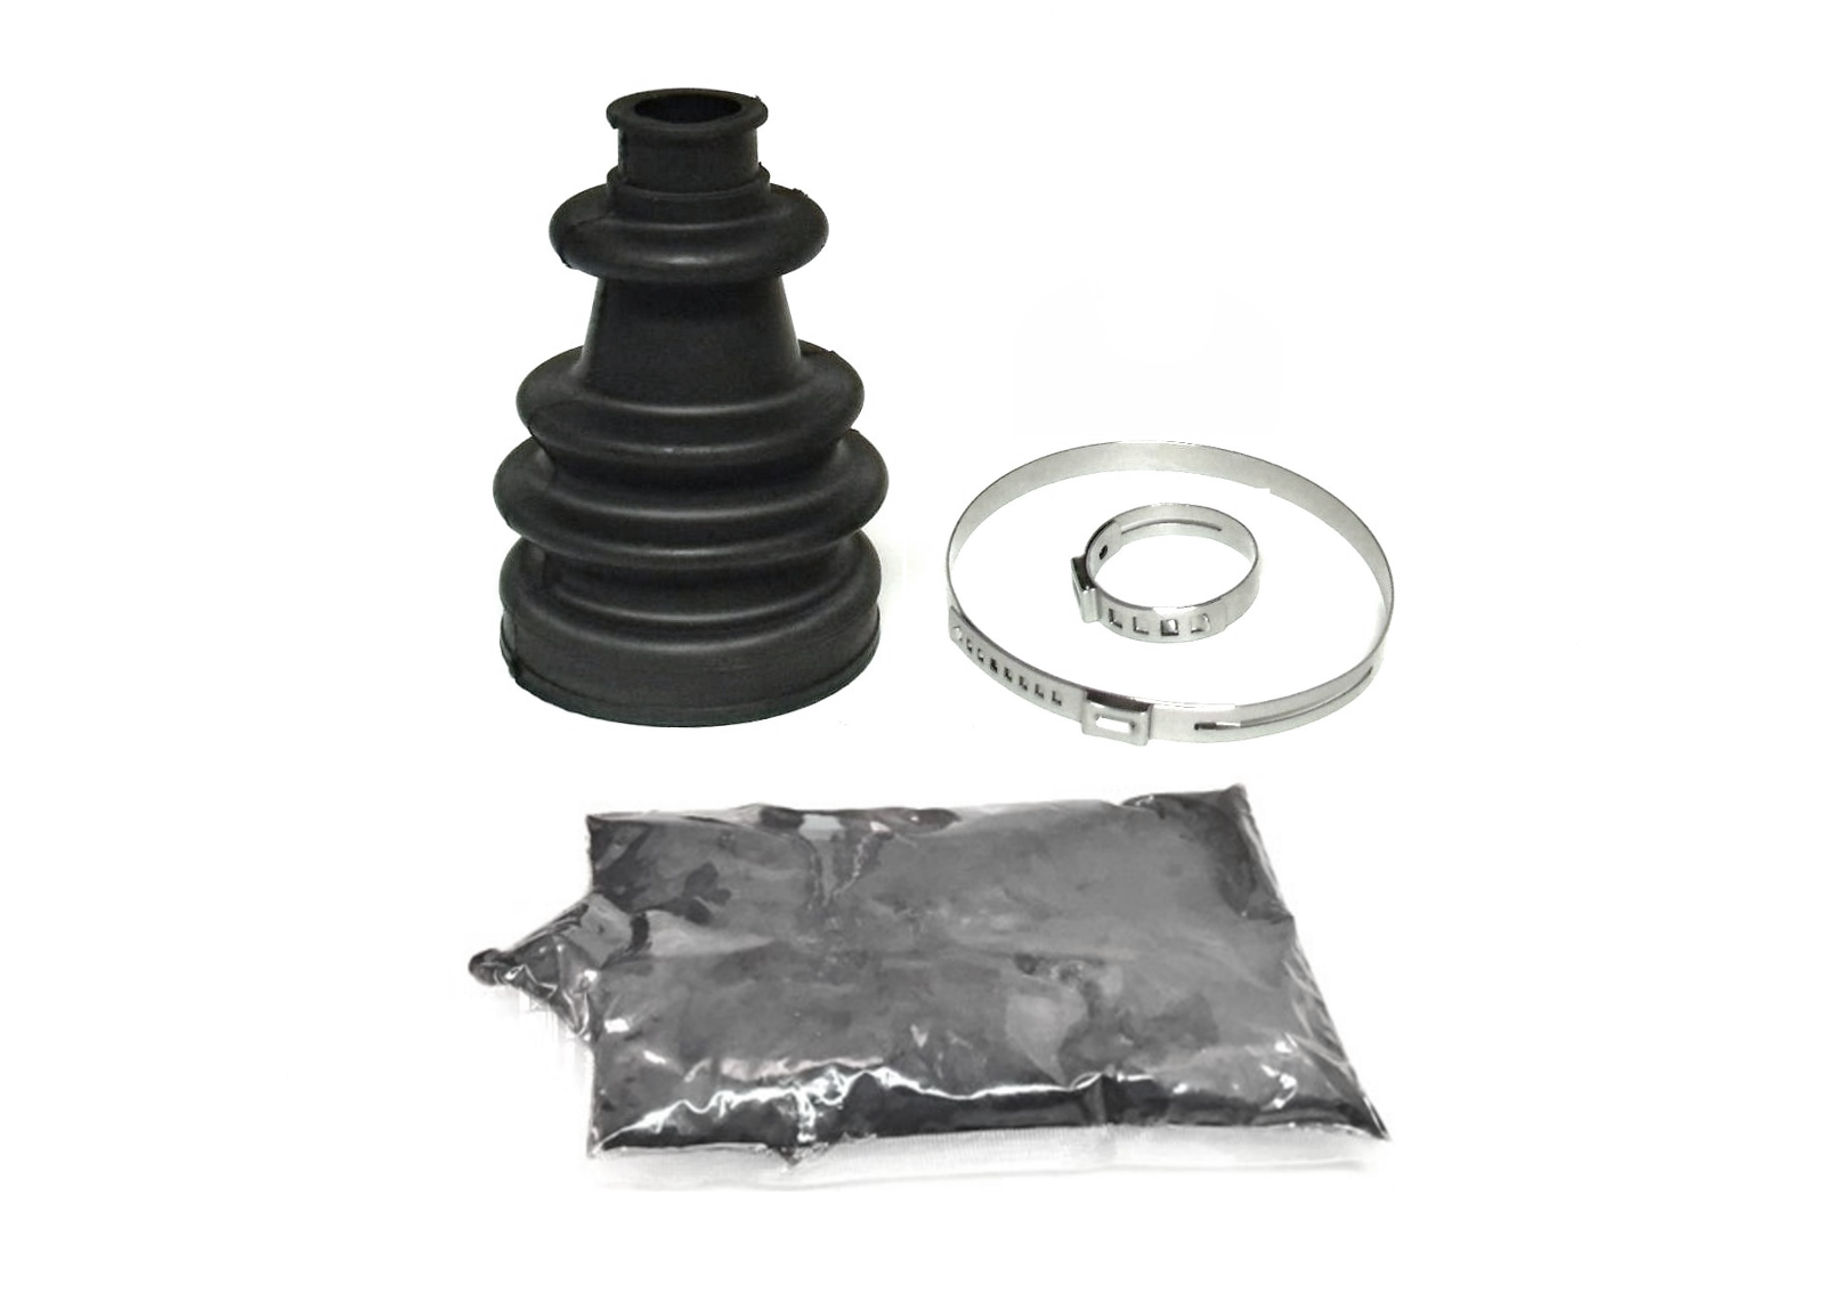 Pair of Heavy Duty Front Outer CV Boot Kits 1999-2000 Polaris Magnum 500 4x4